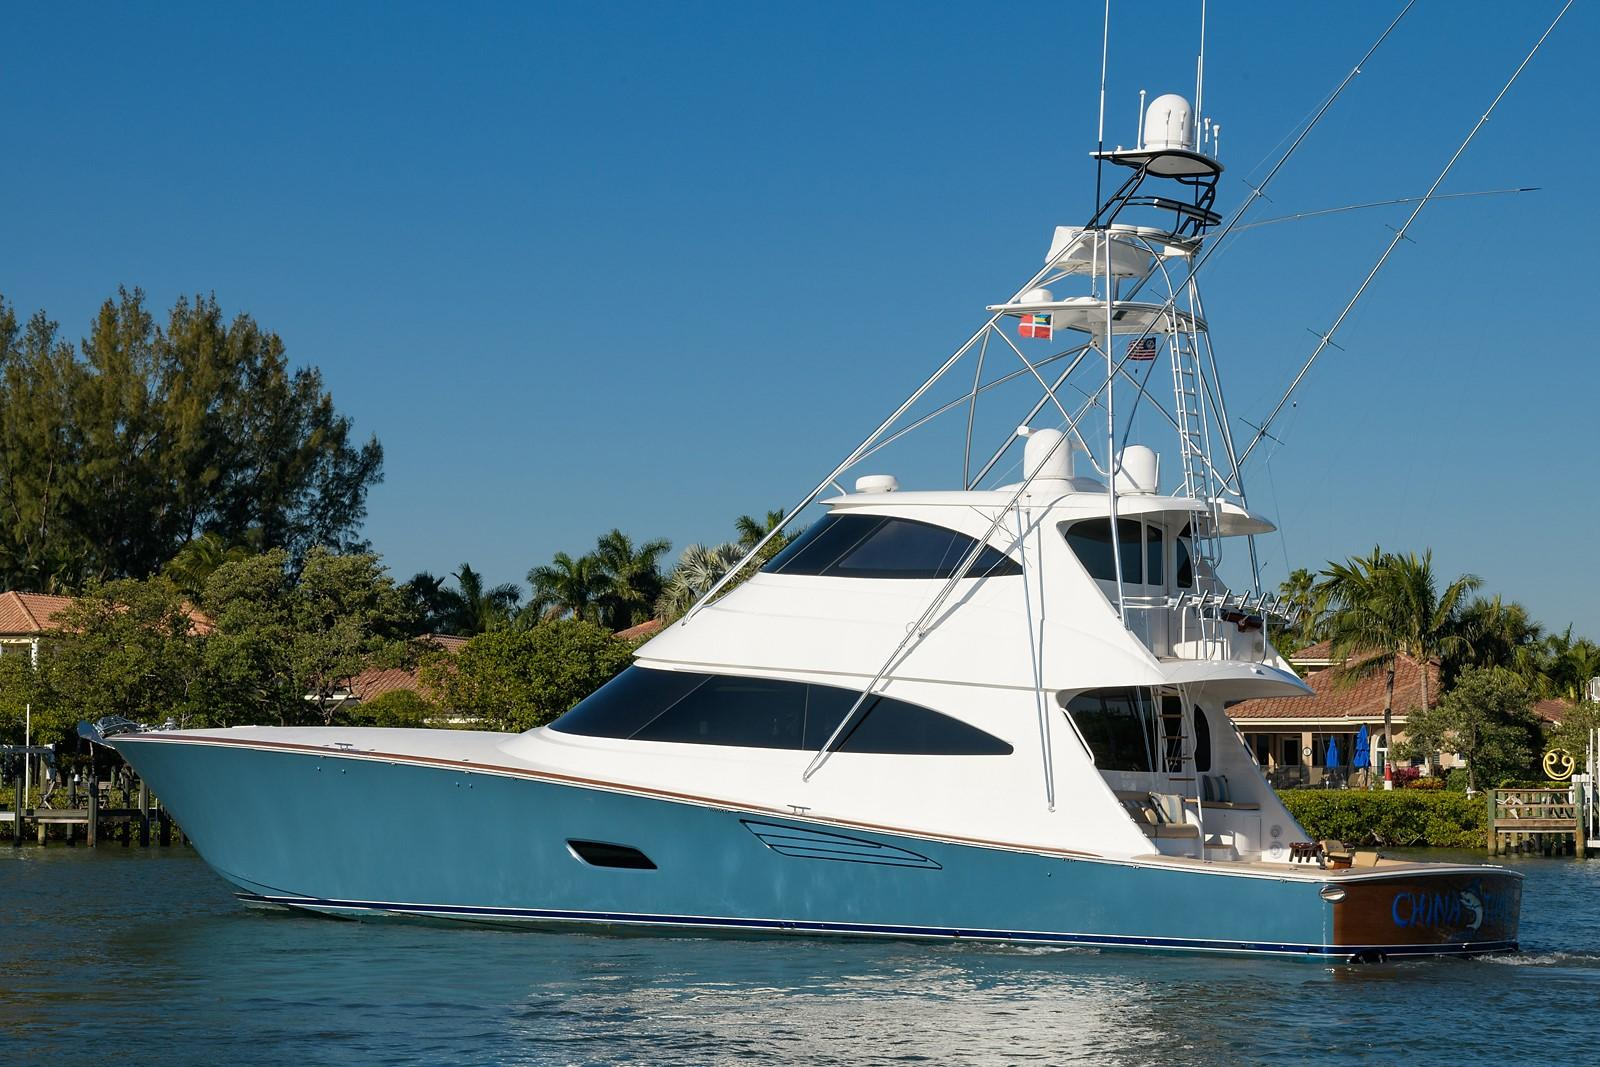 Used Viking Yachts for Sale Ranging from 70' to 80' | Galati Yachts